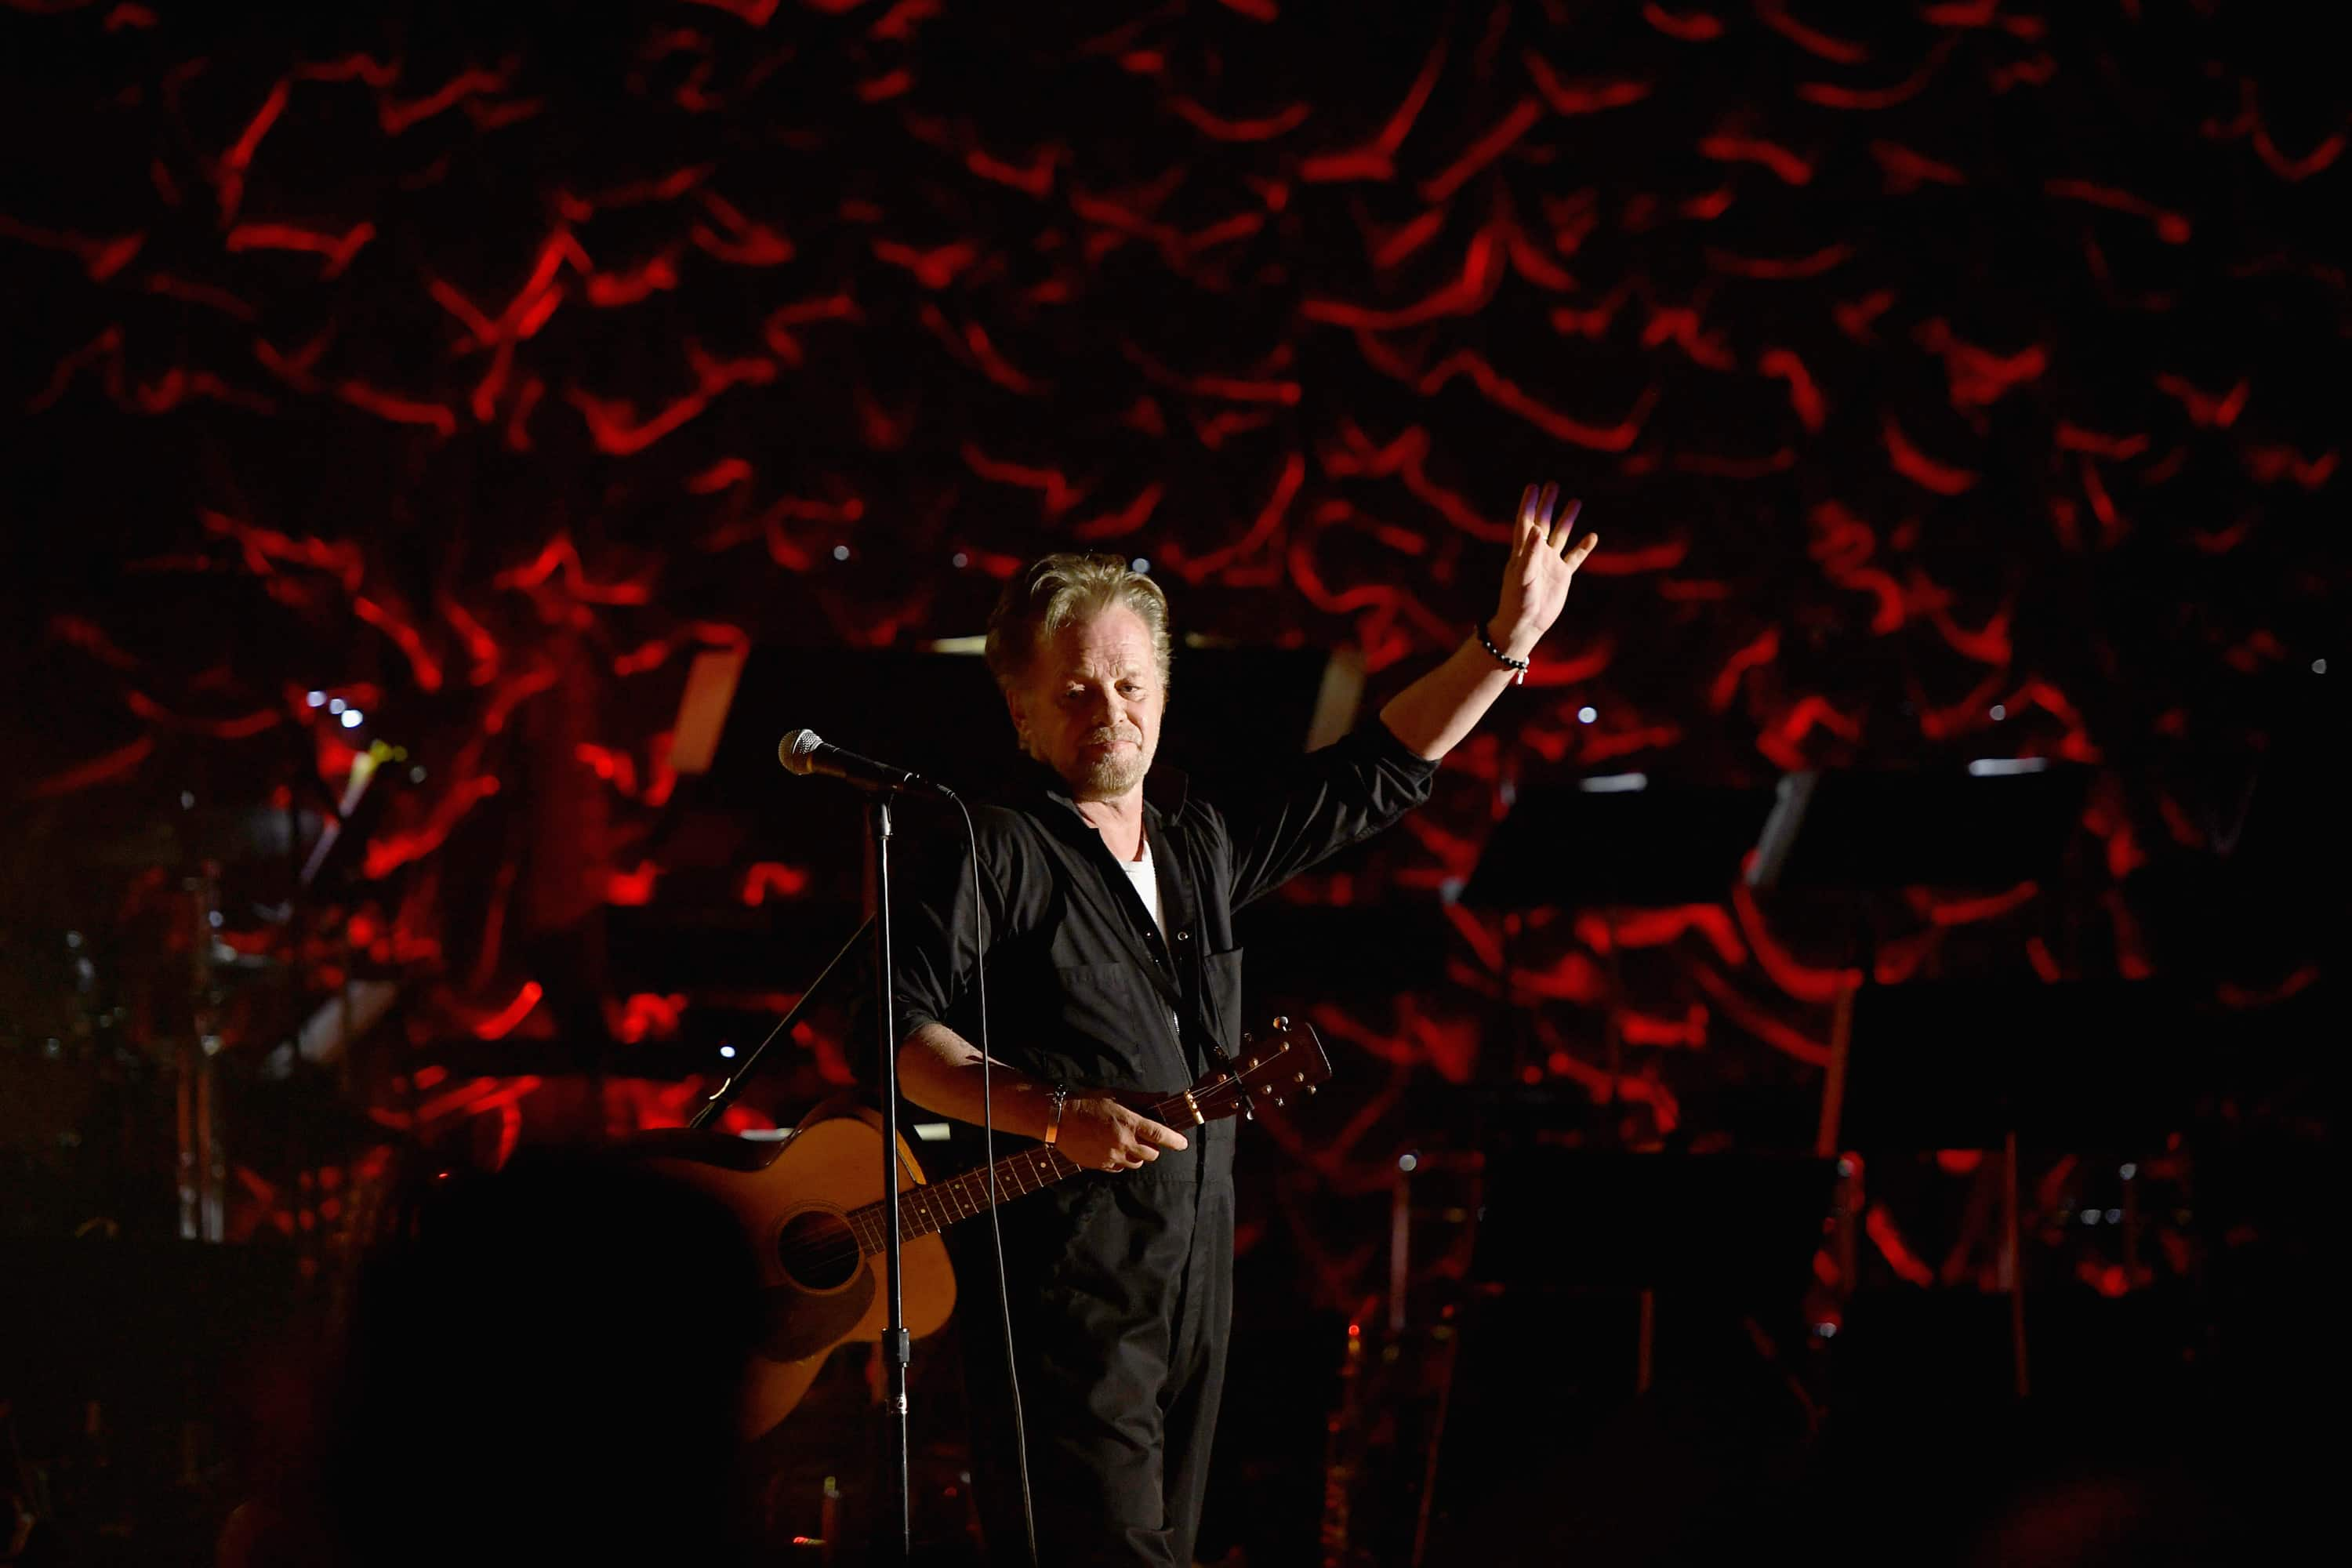 Songwriters Hall of Fame Inductee John Mellencamp performs onstage during the Songwriters Hall of Fame 49th Annual Induction and Awards Dinner at New York Marriott Marquis Hotel on June 14, 2018 in New York City. (Photo by Larry Busacca/Getty Images